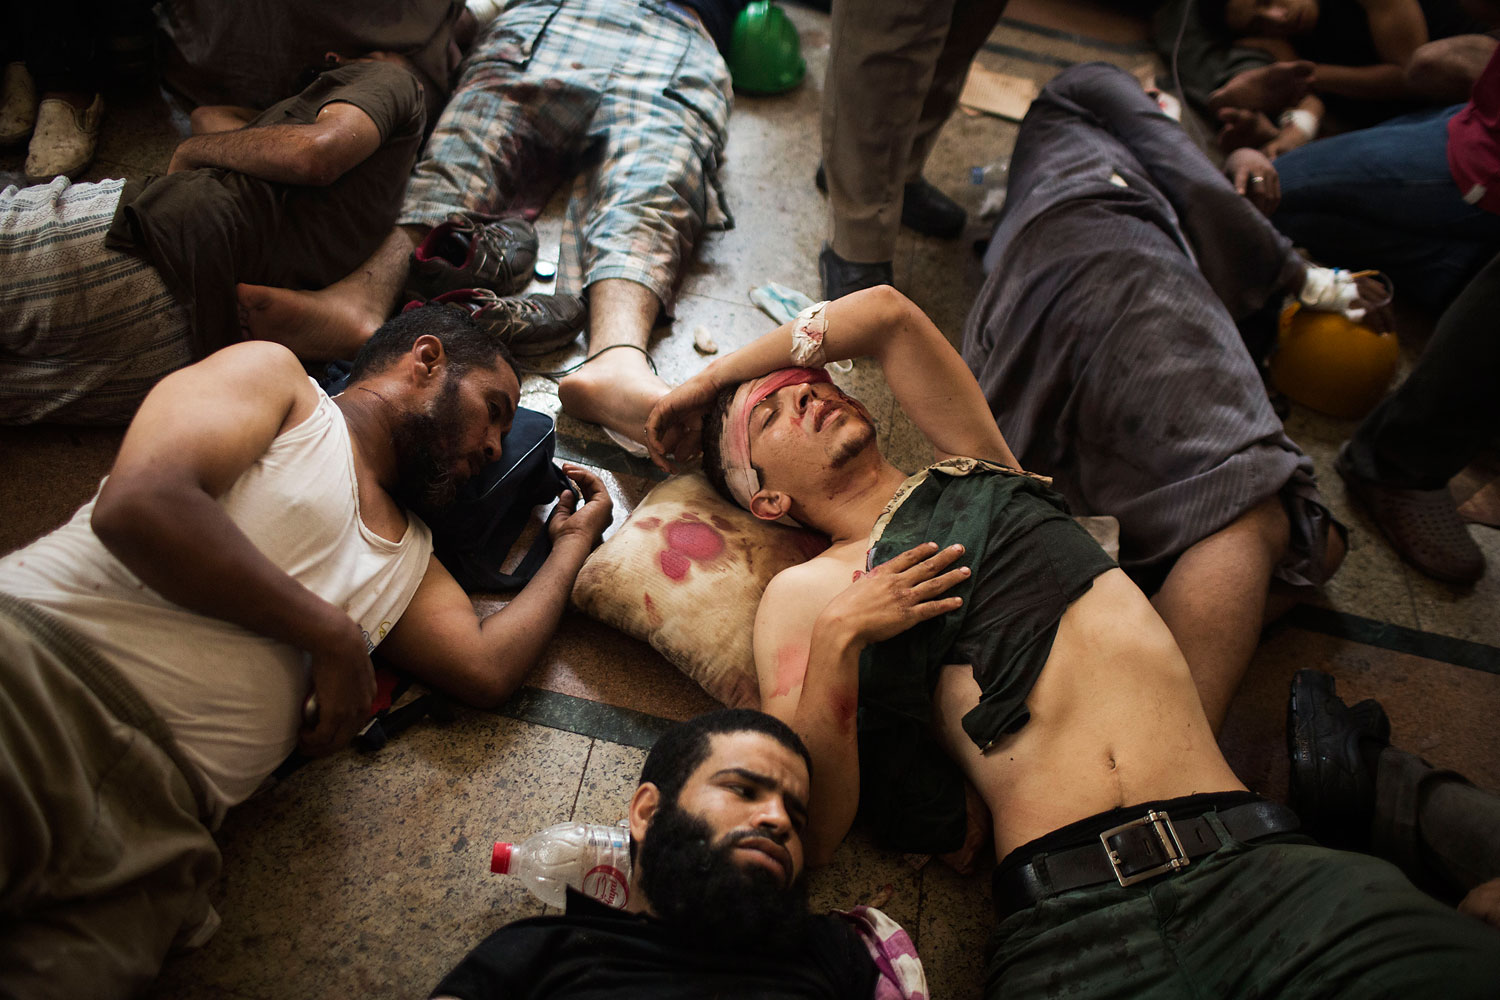 Wounded supporters of ousted Islamist President Mohammed Morsi lie on the floor of a makeshift hospital at a sit-in at Cairo's Nasr City district, Egypt, Aug. 14, 2013.